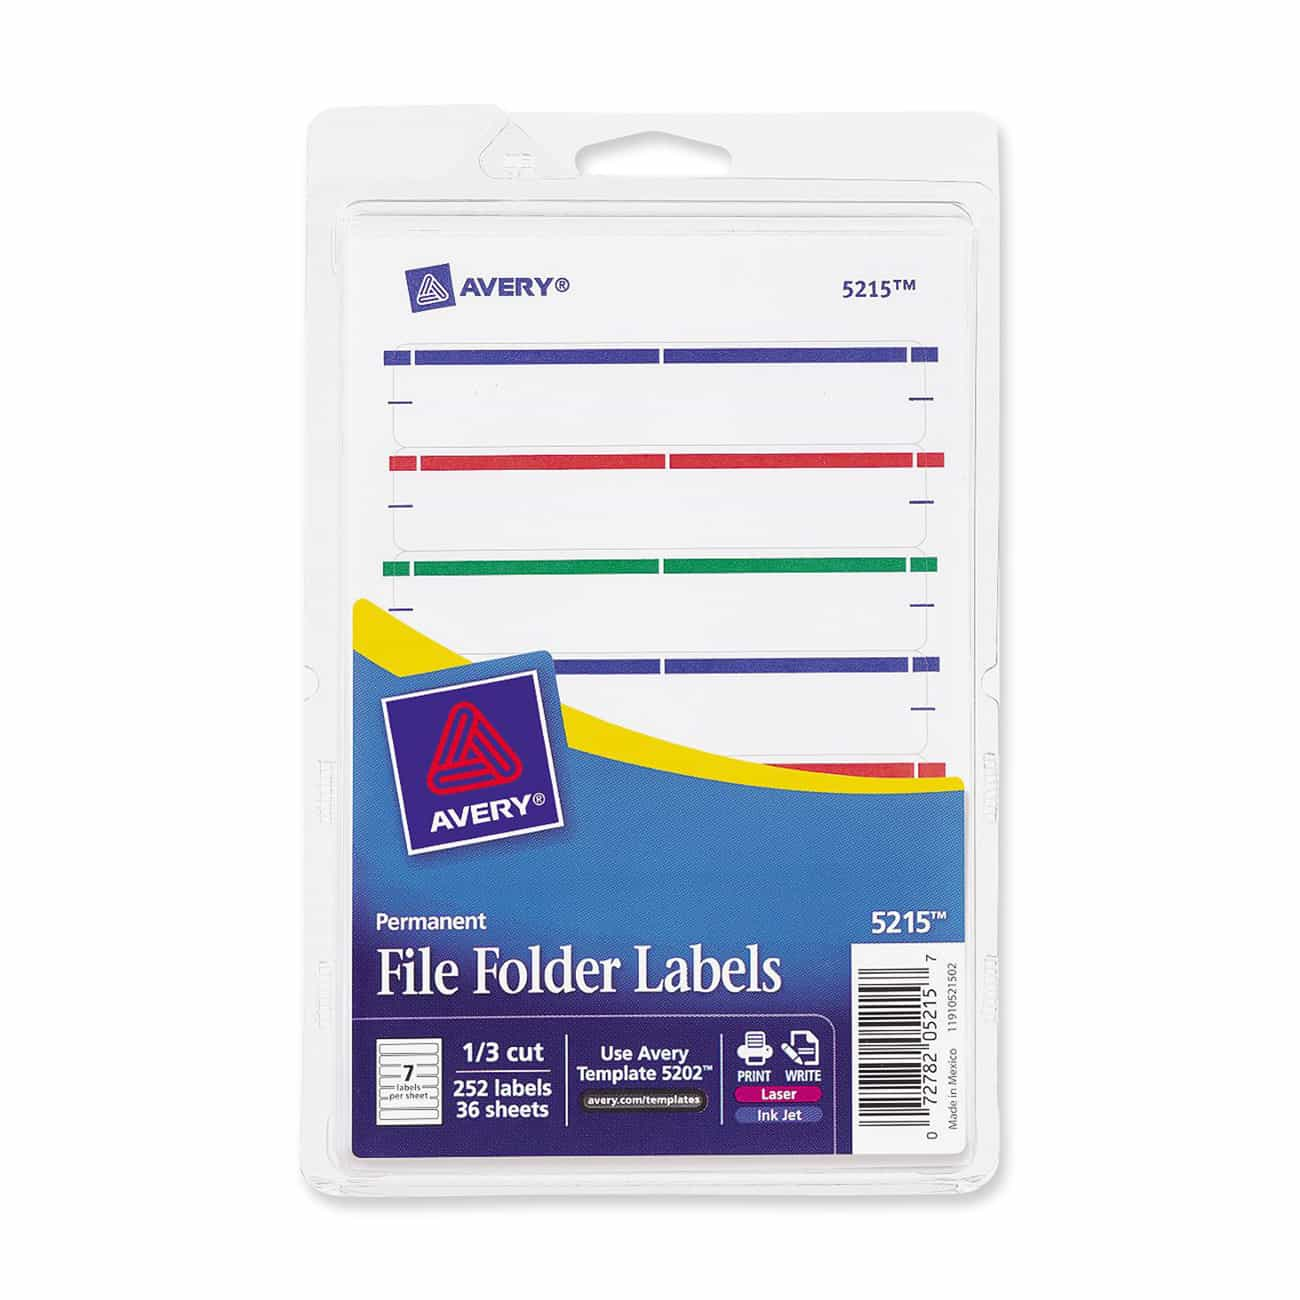 Avery File Folder Labels Template 30 Per Sheet And File Folder Labels Template For Word